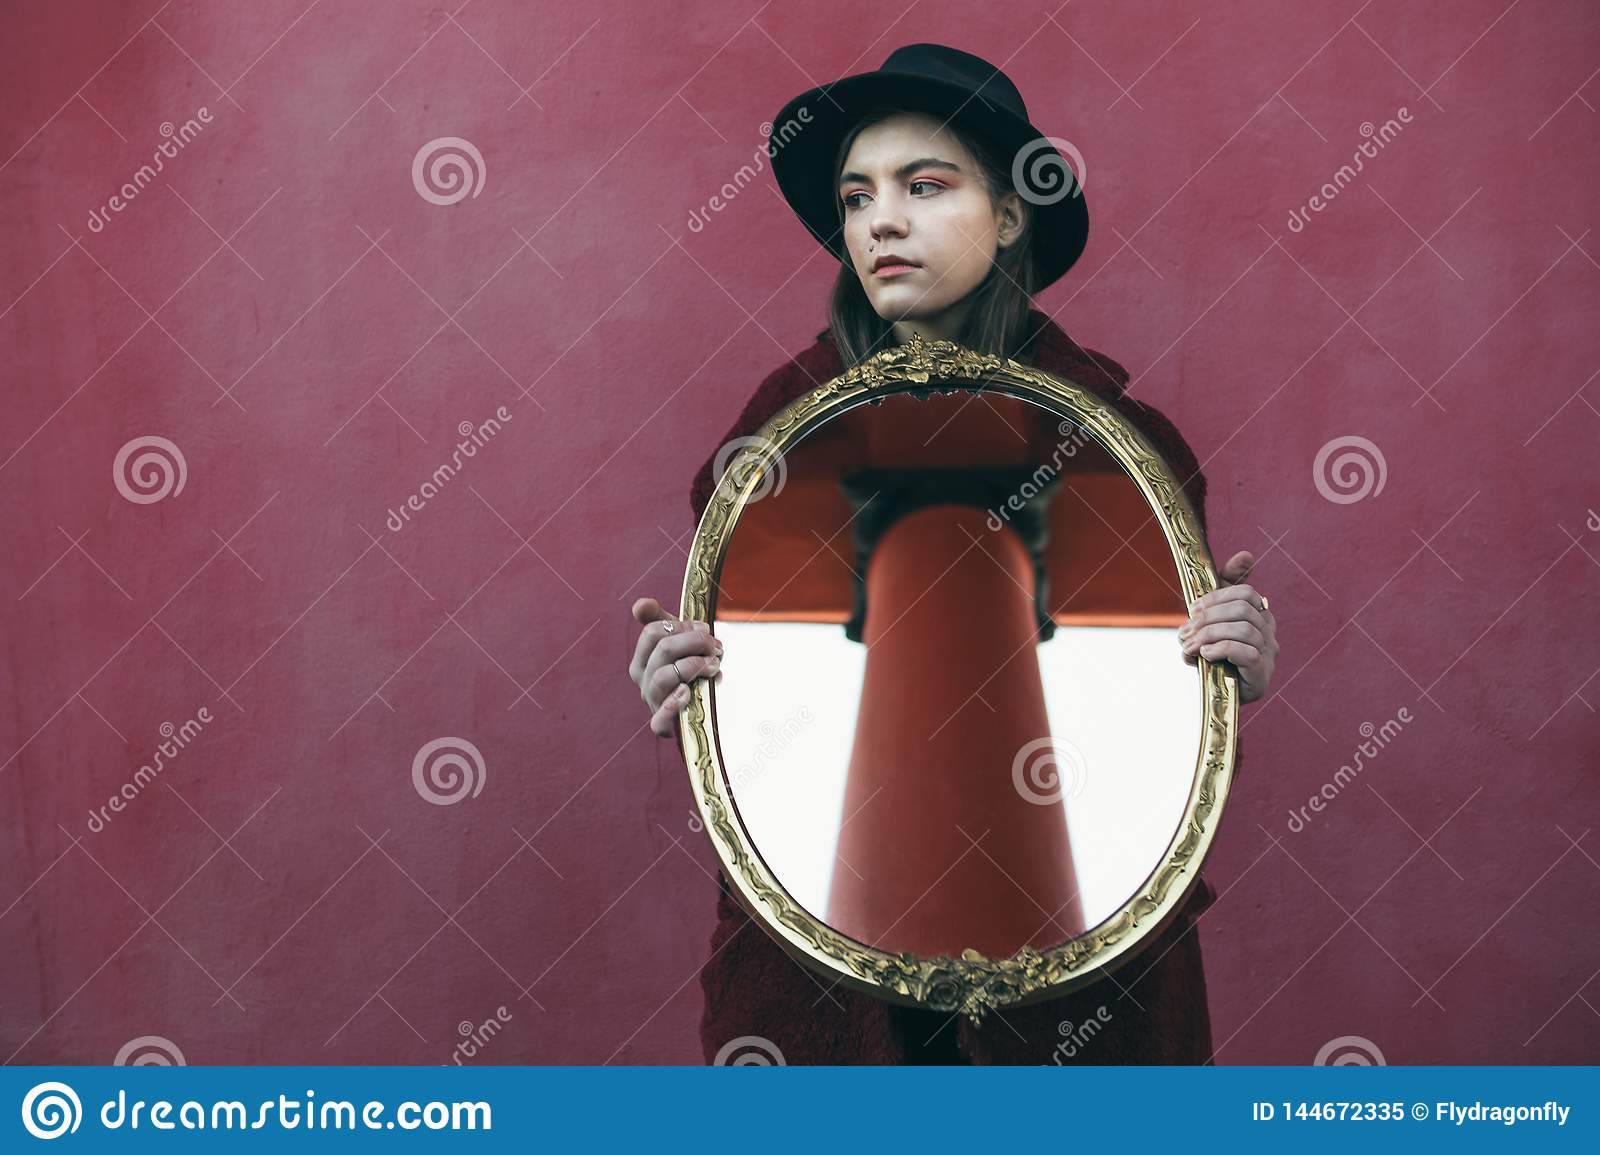 Young teen girl in hat holding mirror in front of red wall. the mirror reflects the column of the building opposite